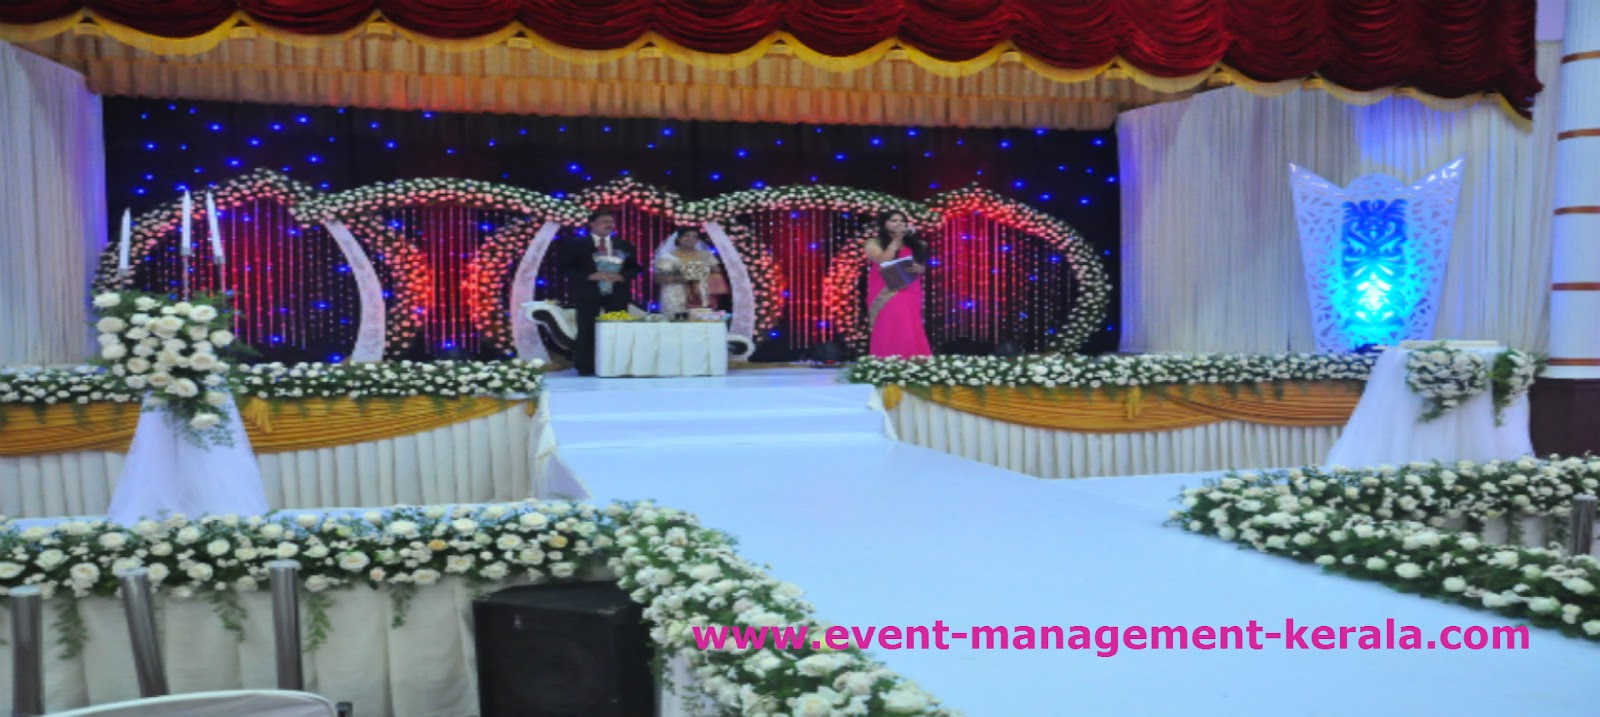 Wedding Event Management In Thrissur